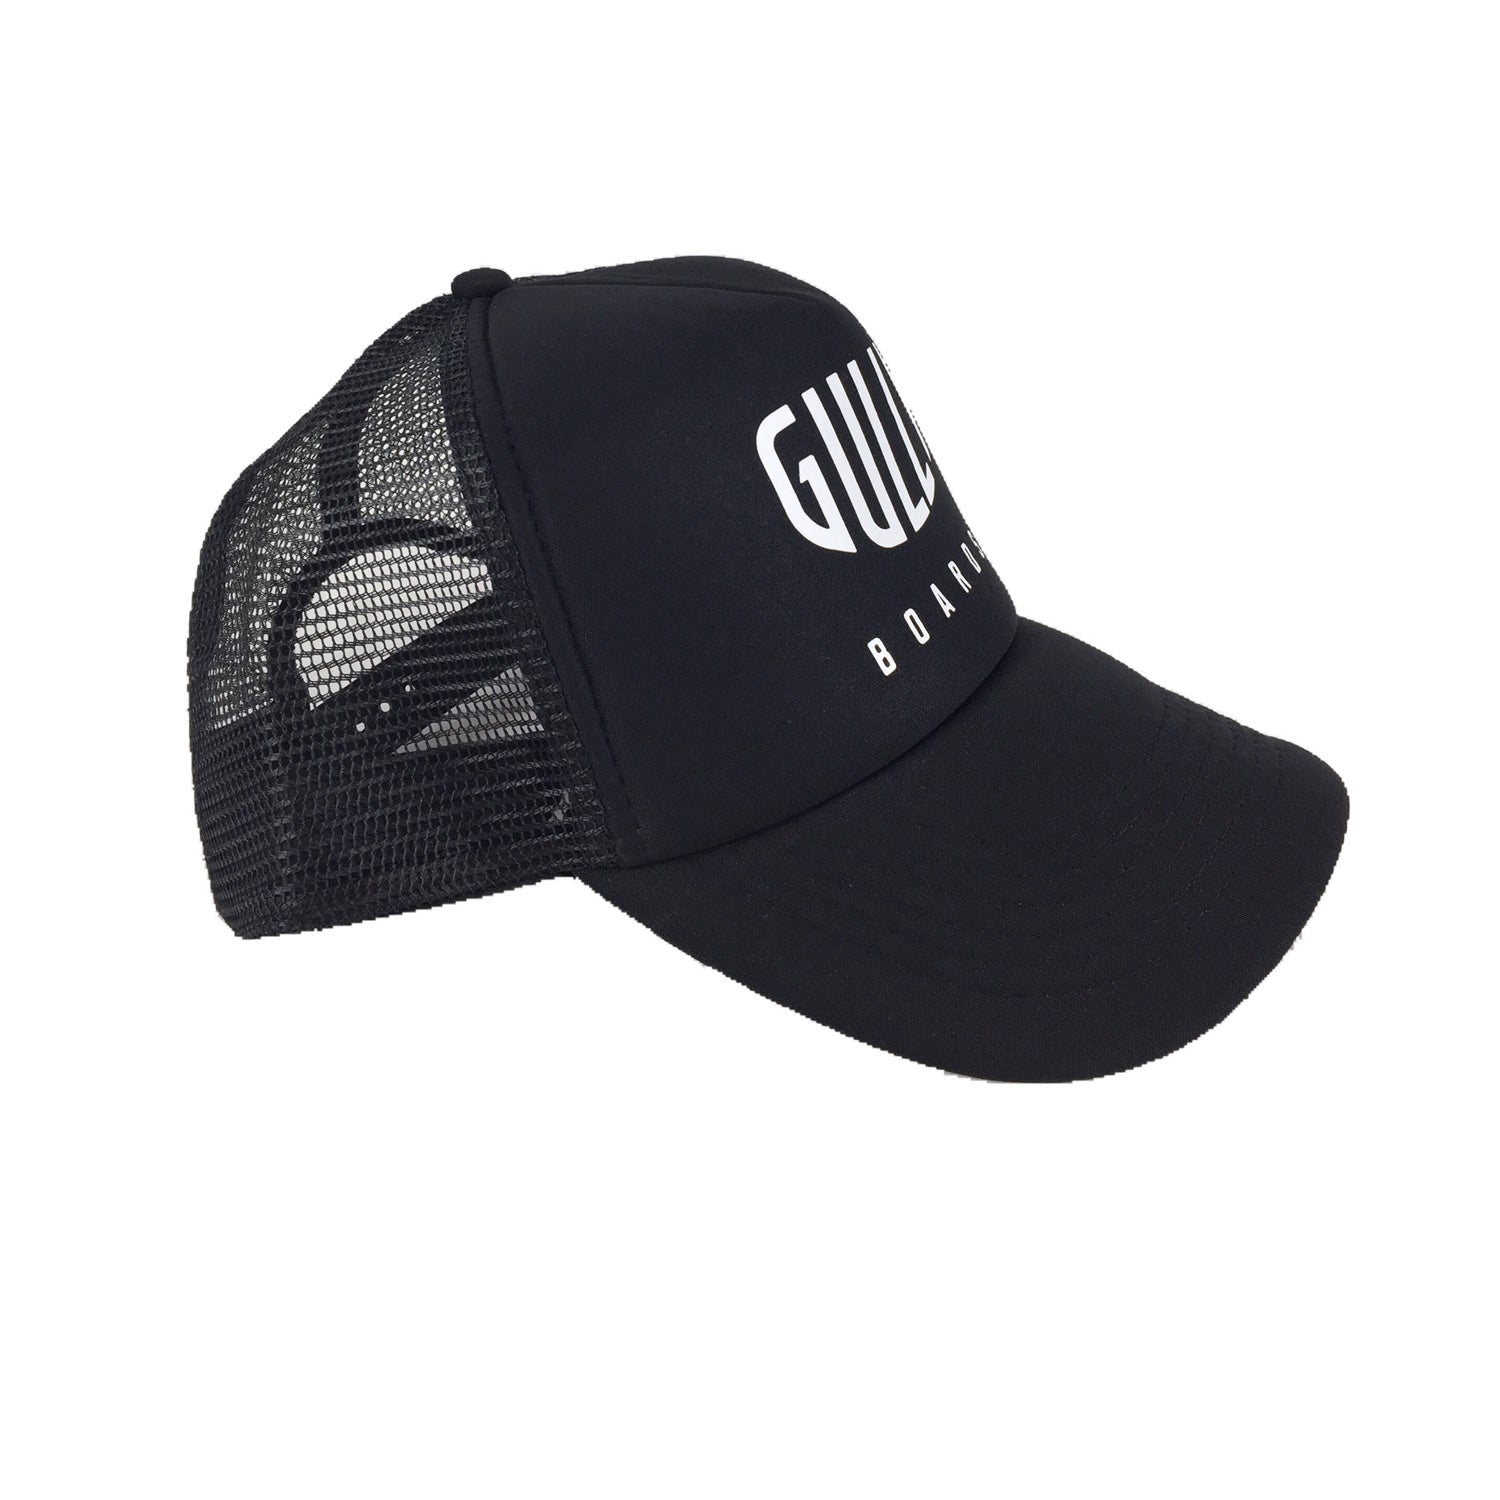 The Gully Trucker - Black